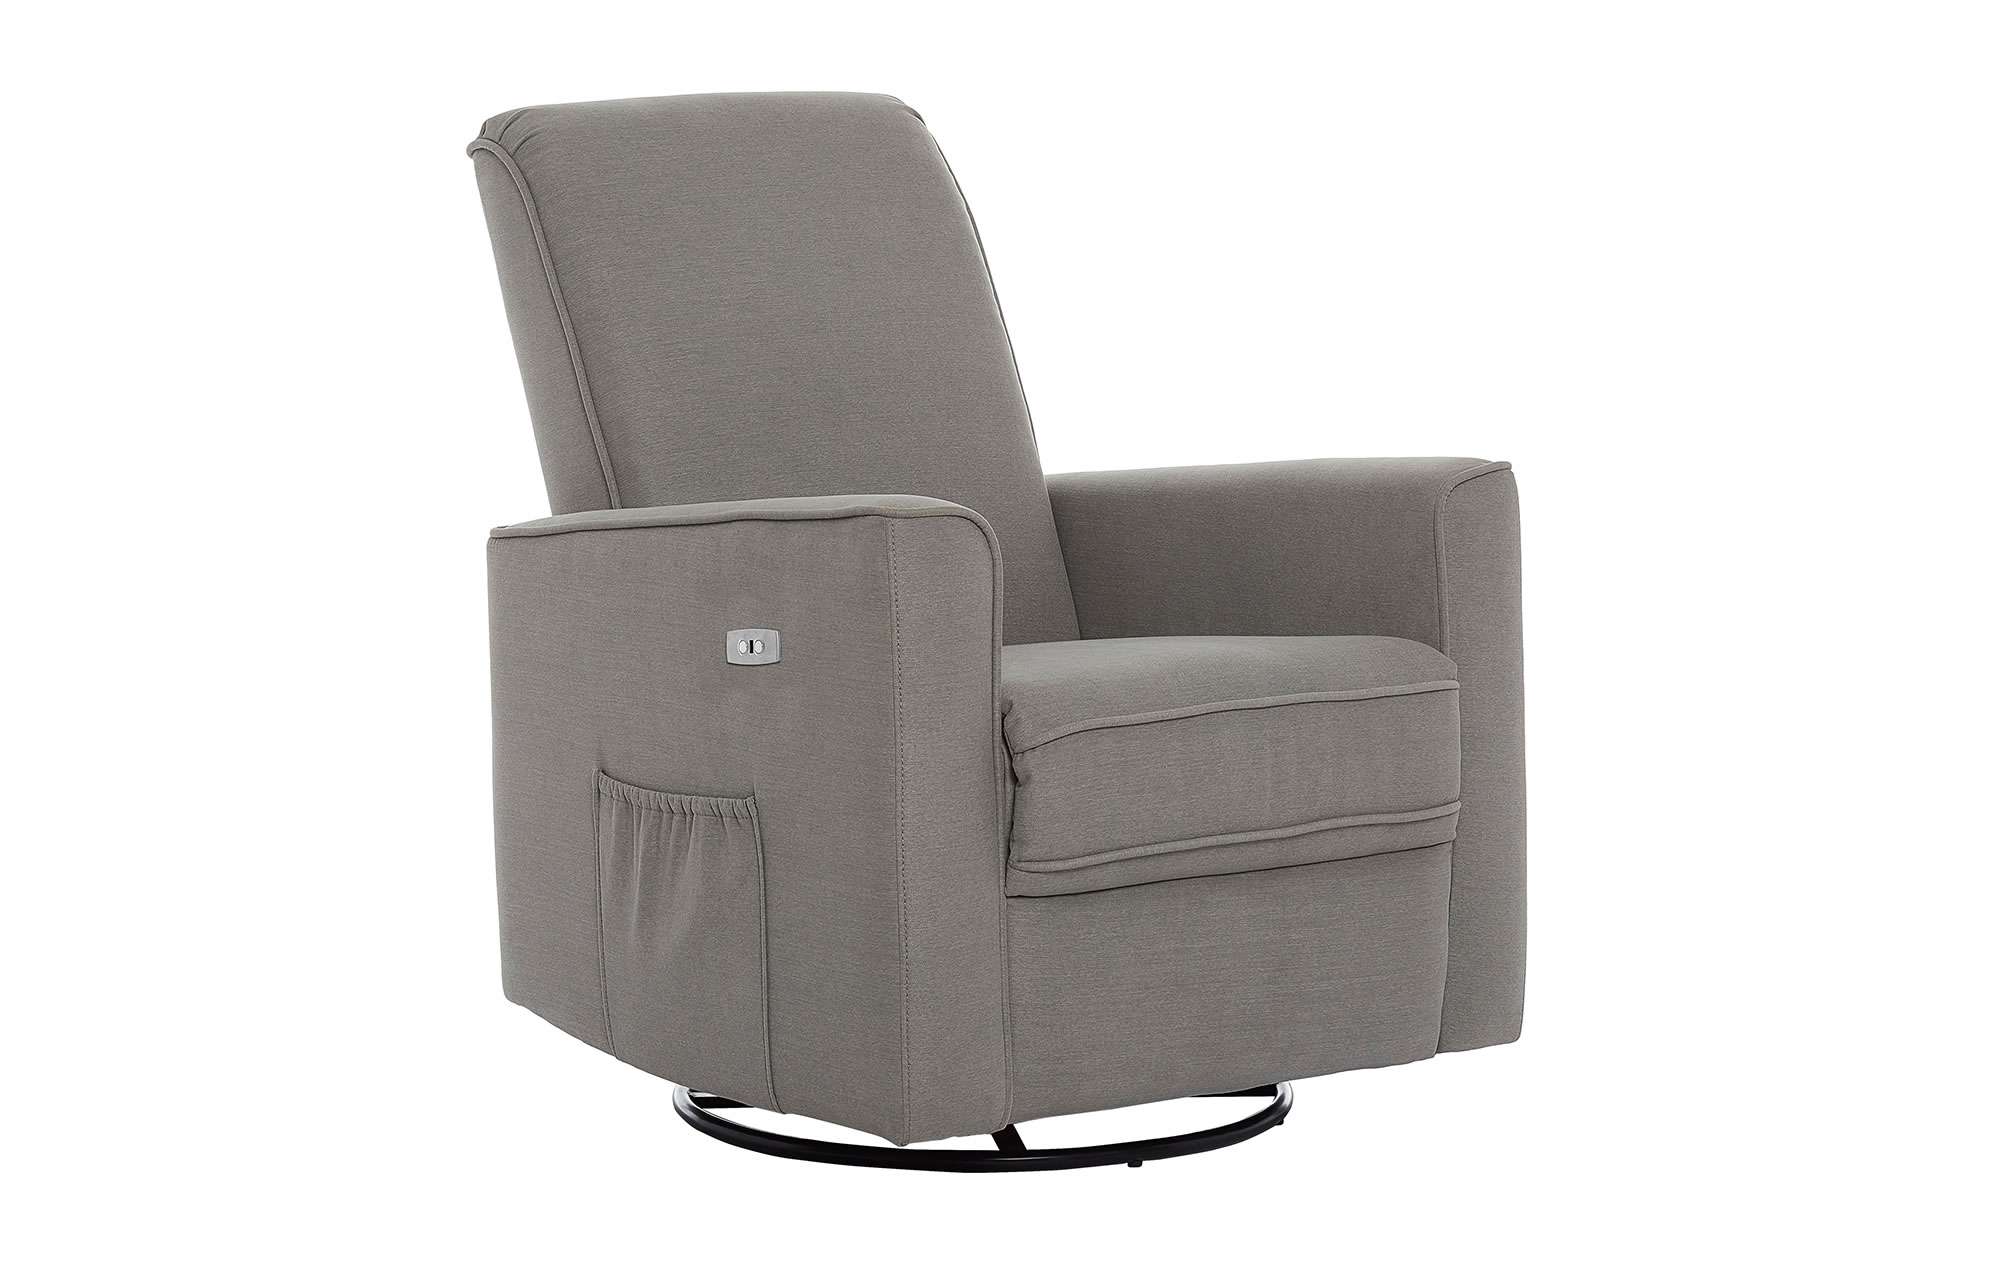 Harlow Deluxe Glider|Recliner|Rocker in Smokey